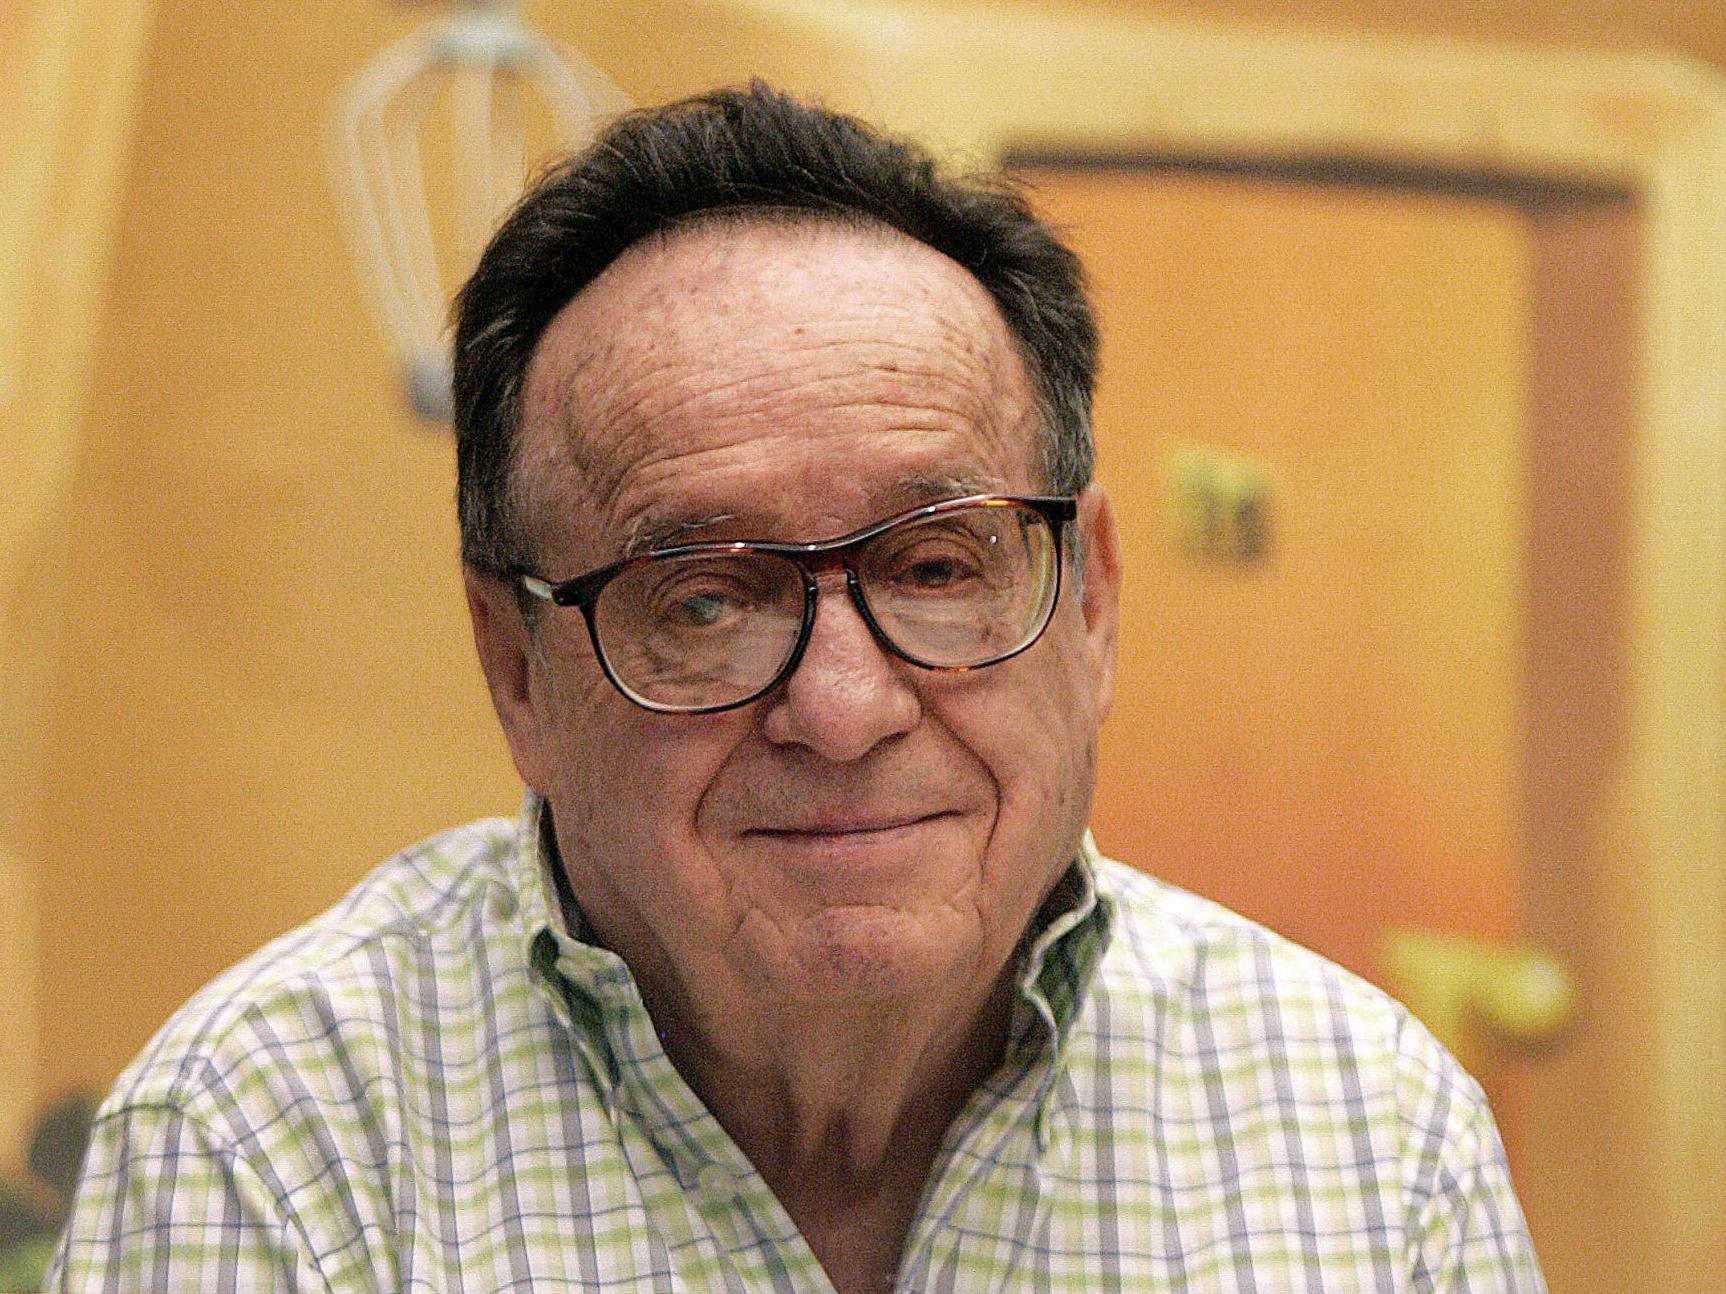 Chespirito: Who was the iconic Mexican comedian?